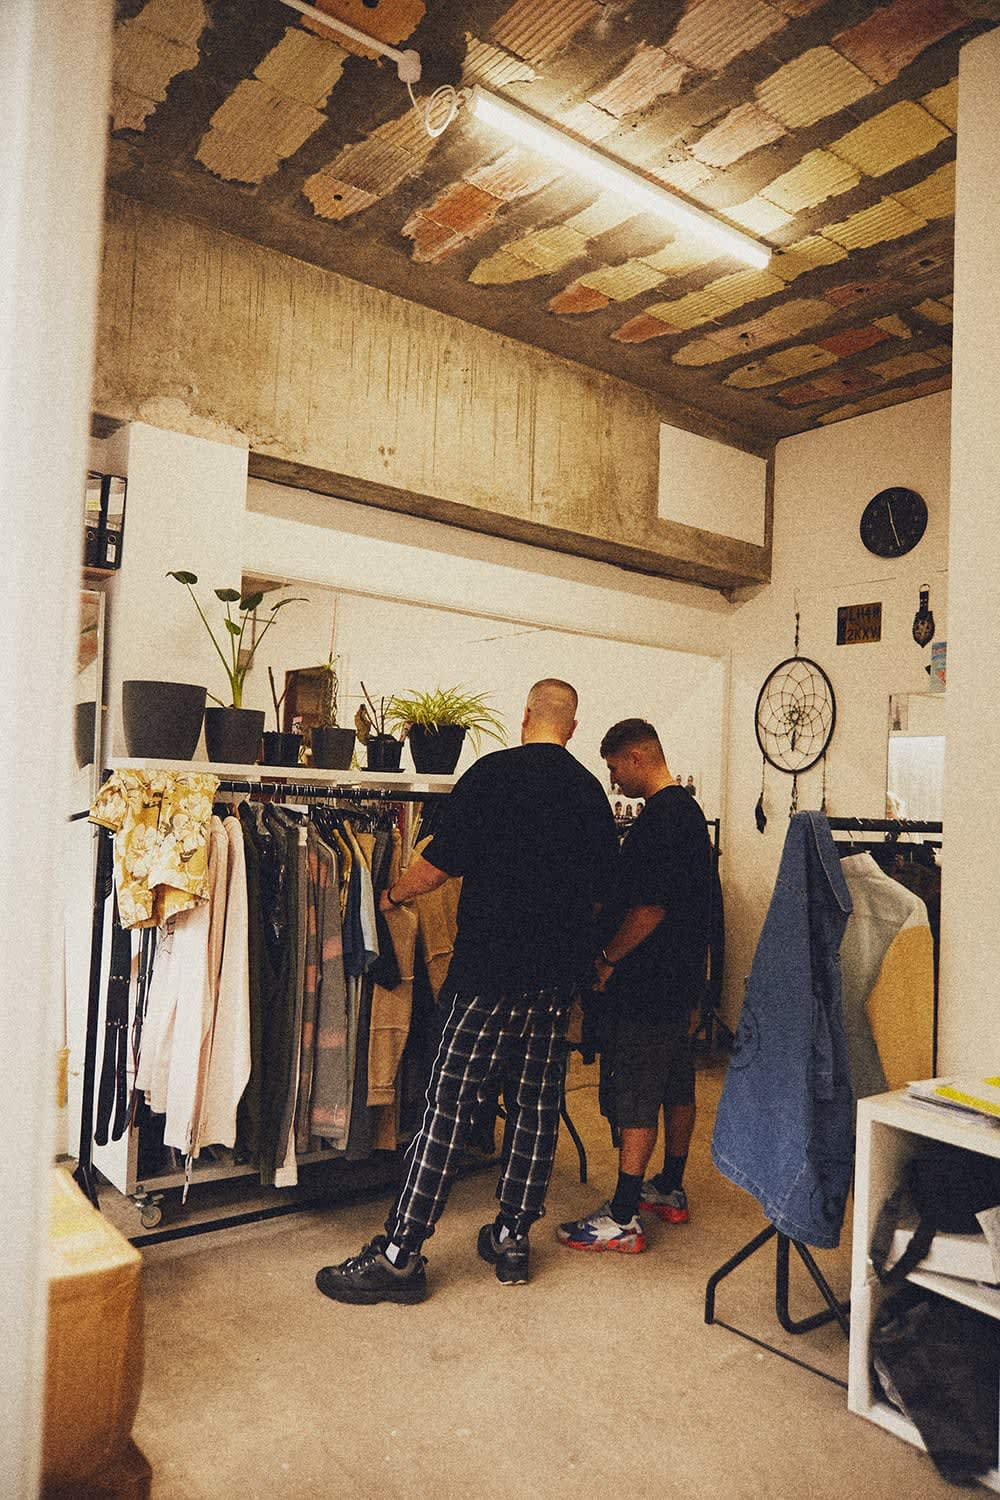 Liam Hodges and Mike Key looking through a rail of new season samples in the Liam Hodges studio